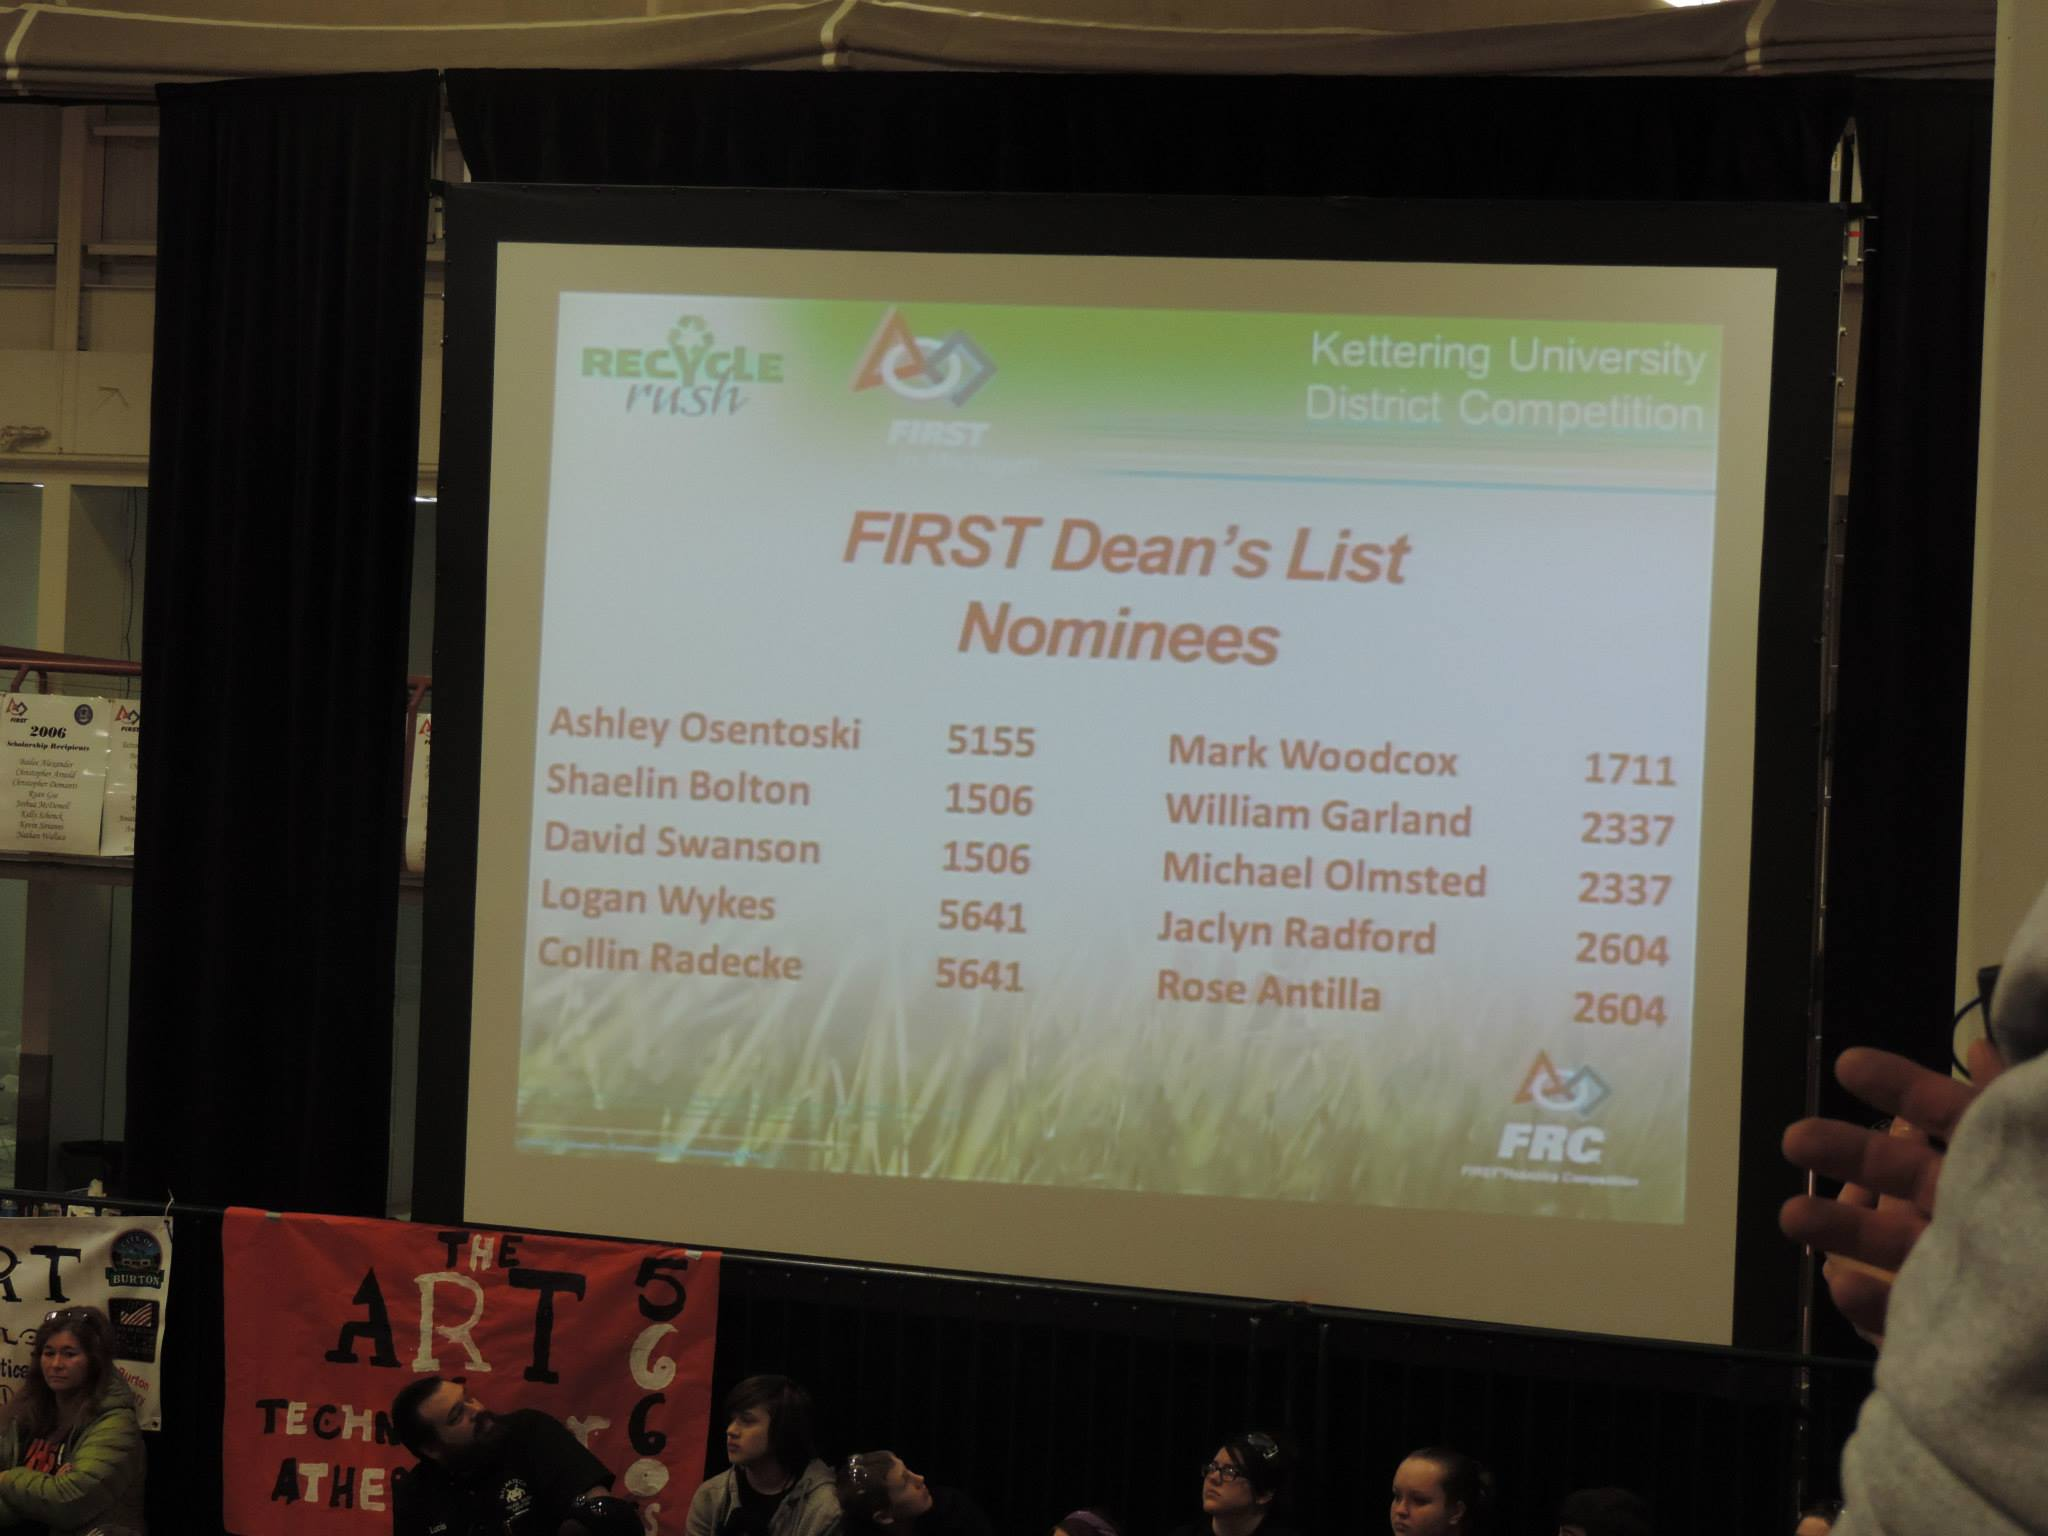 Way to go Deans list Nominees